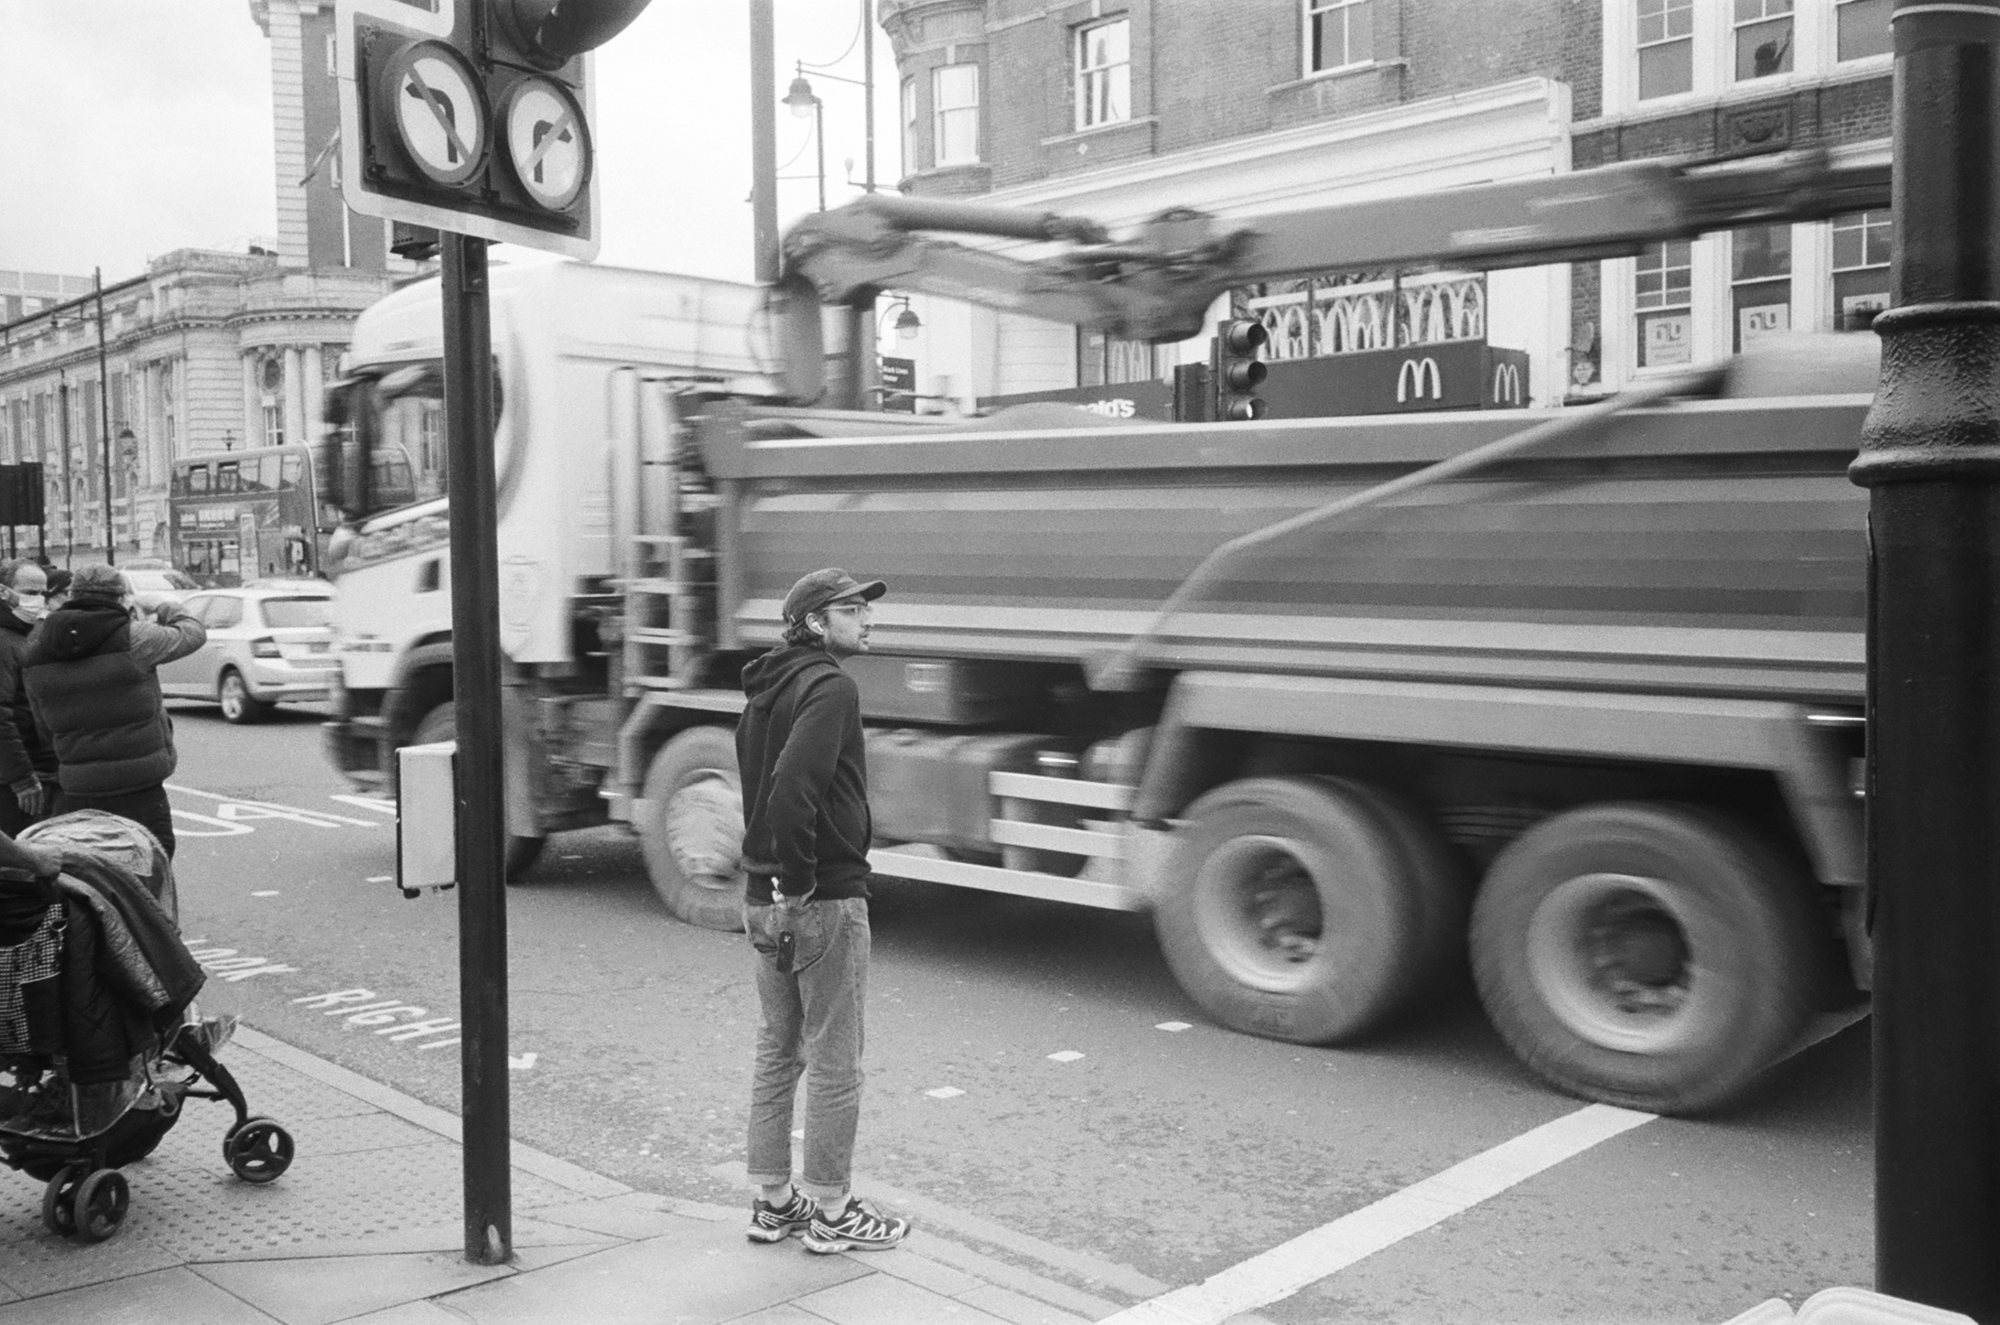 Man at pedestrian crossing and truck (Pic: Rob Andrews)